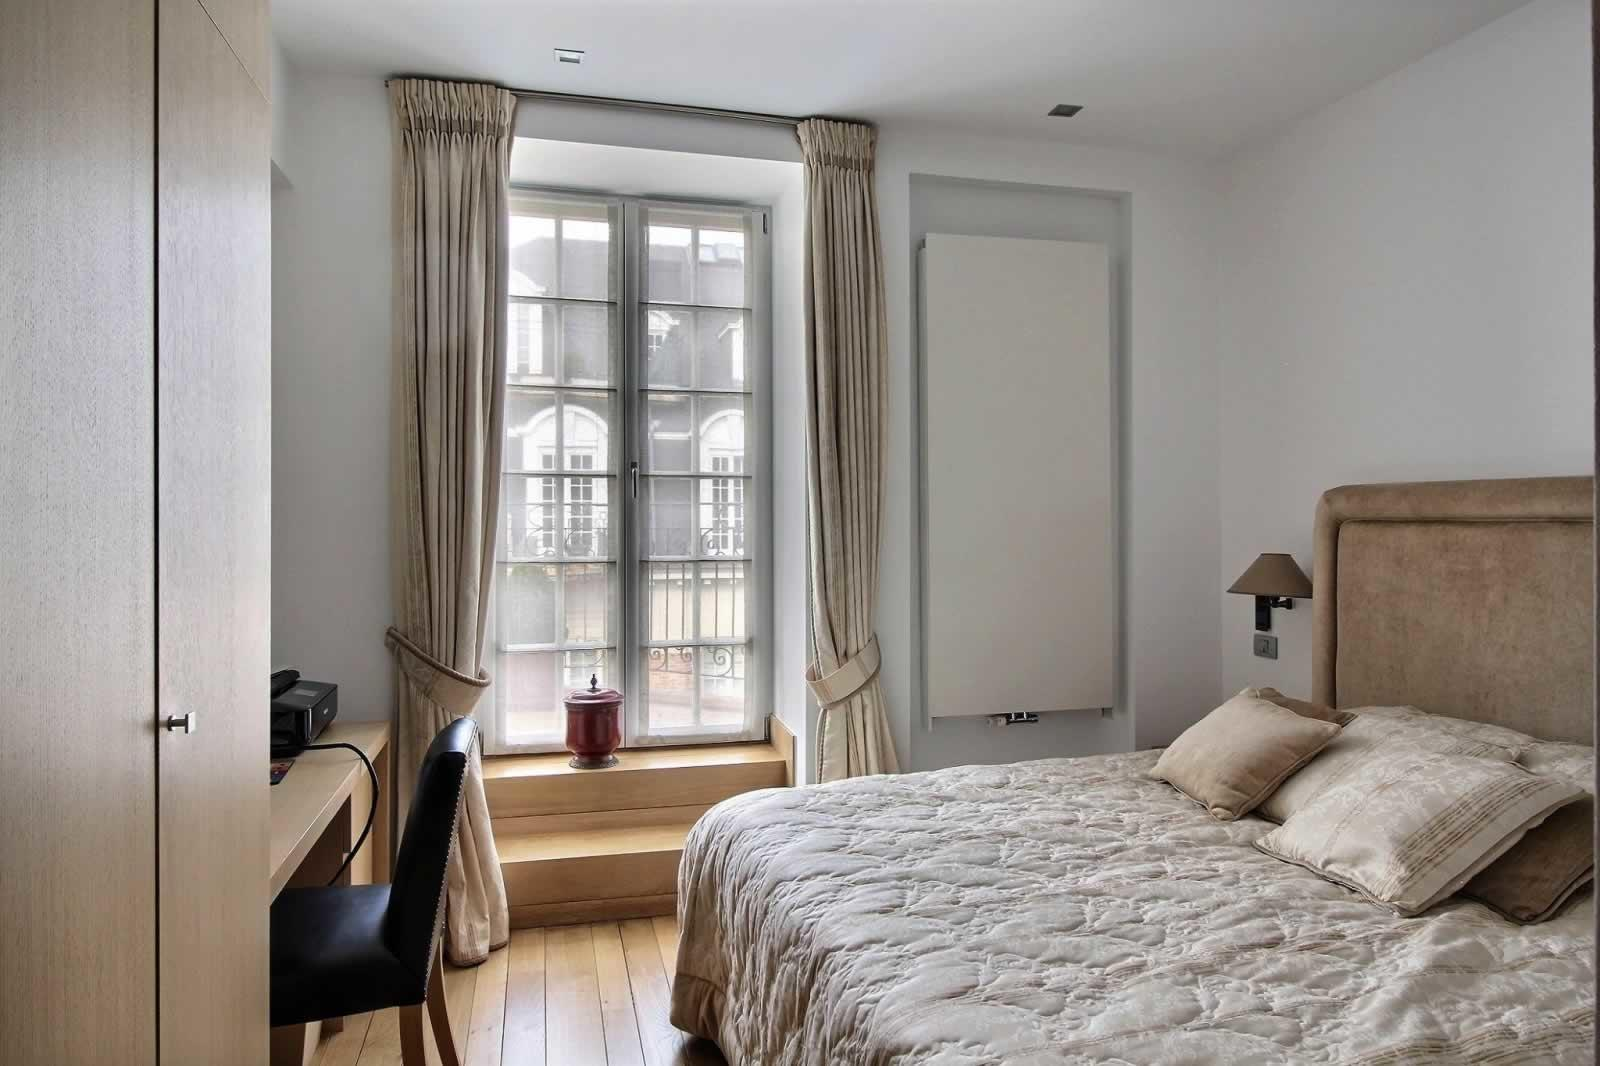 superbe-appartement-a-vendre-residence-privee-securisee-uccle-terrasses-buanderie